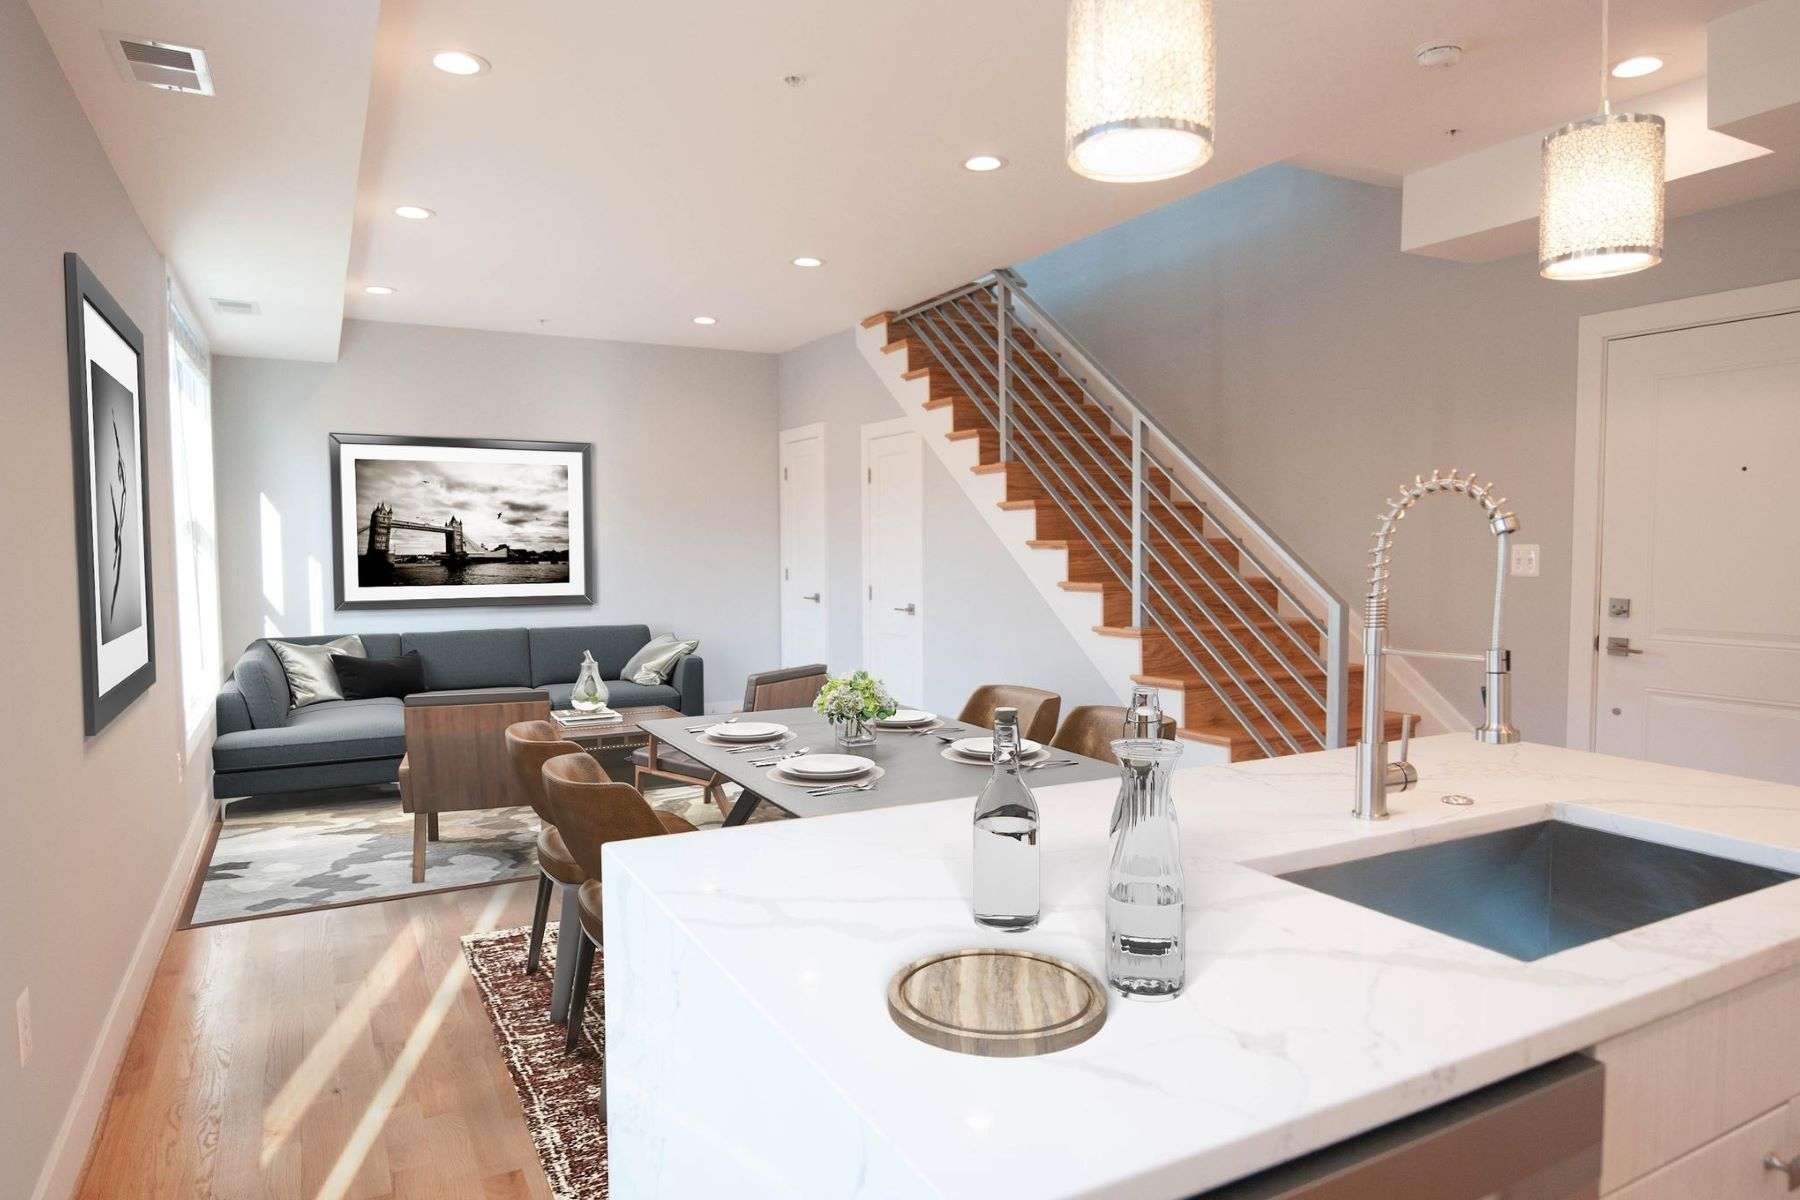 Other Residential for Sale at 37 Missouri Ave NW #23 37 Missouri Ave NW #23 Washington, District Of Columbia 20011 United States